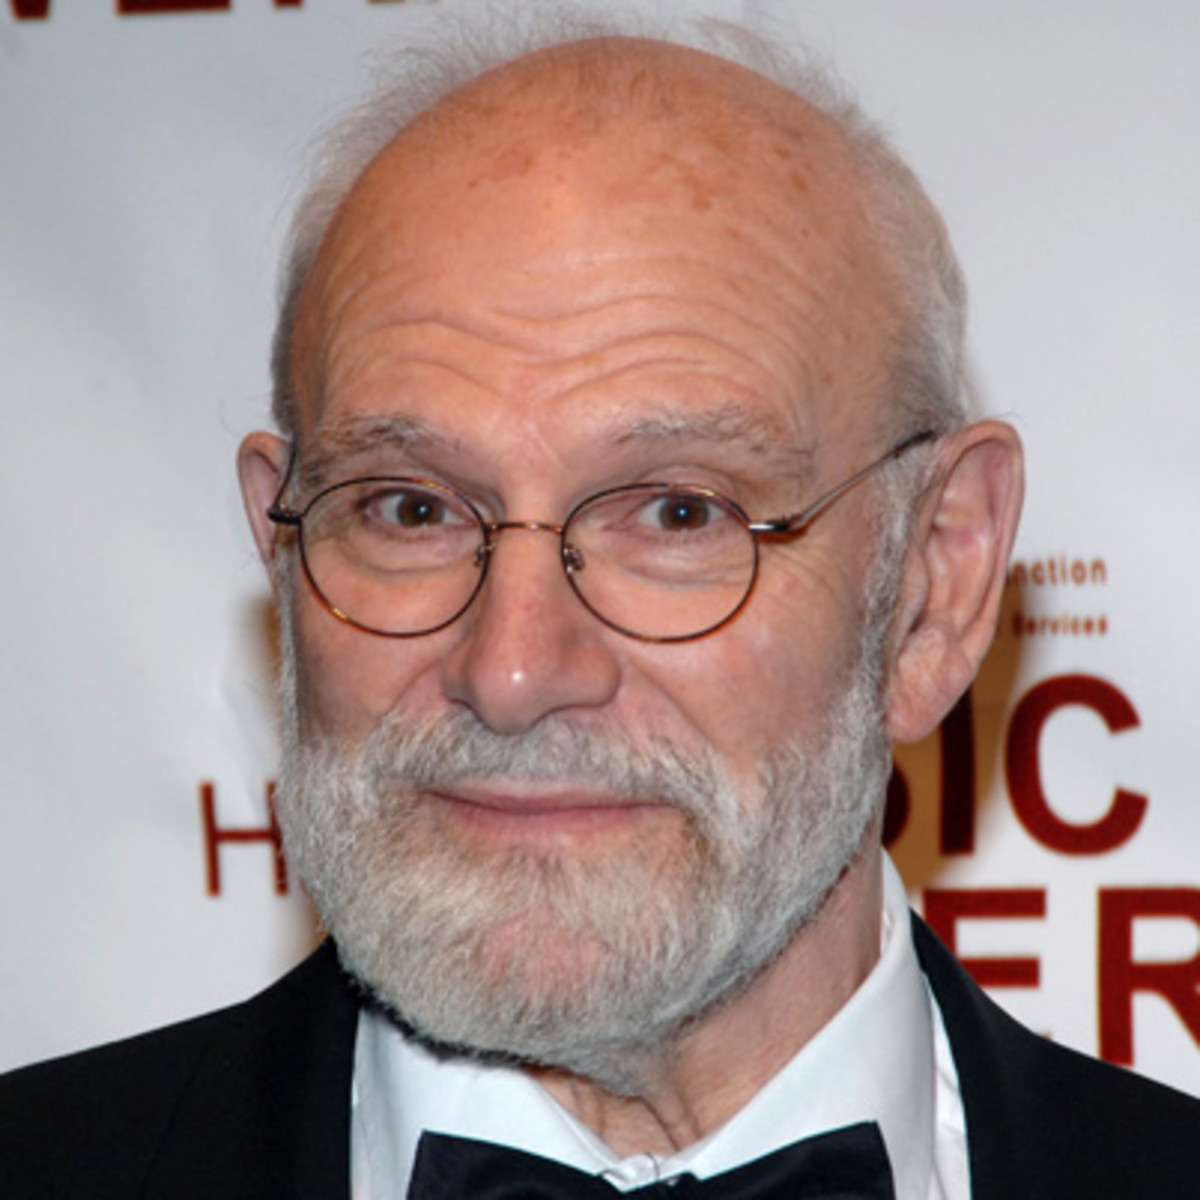 the importance of neurological studies according to oliver sacks